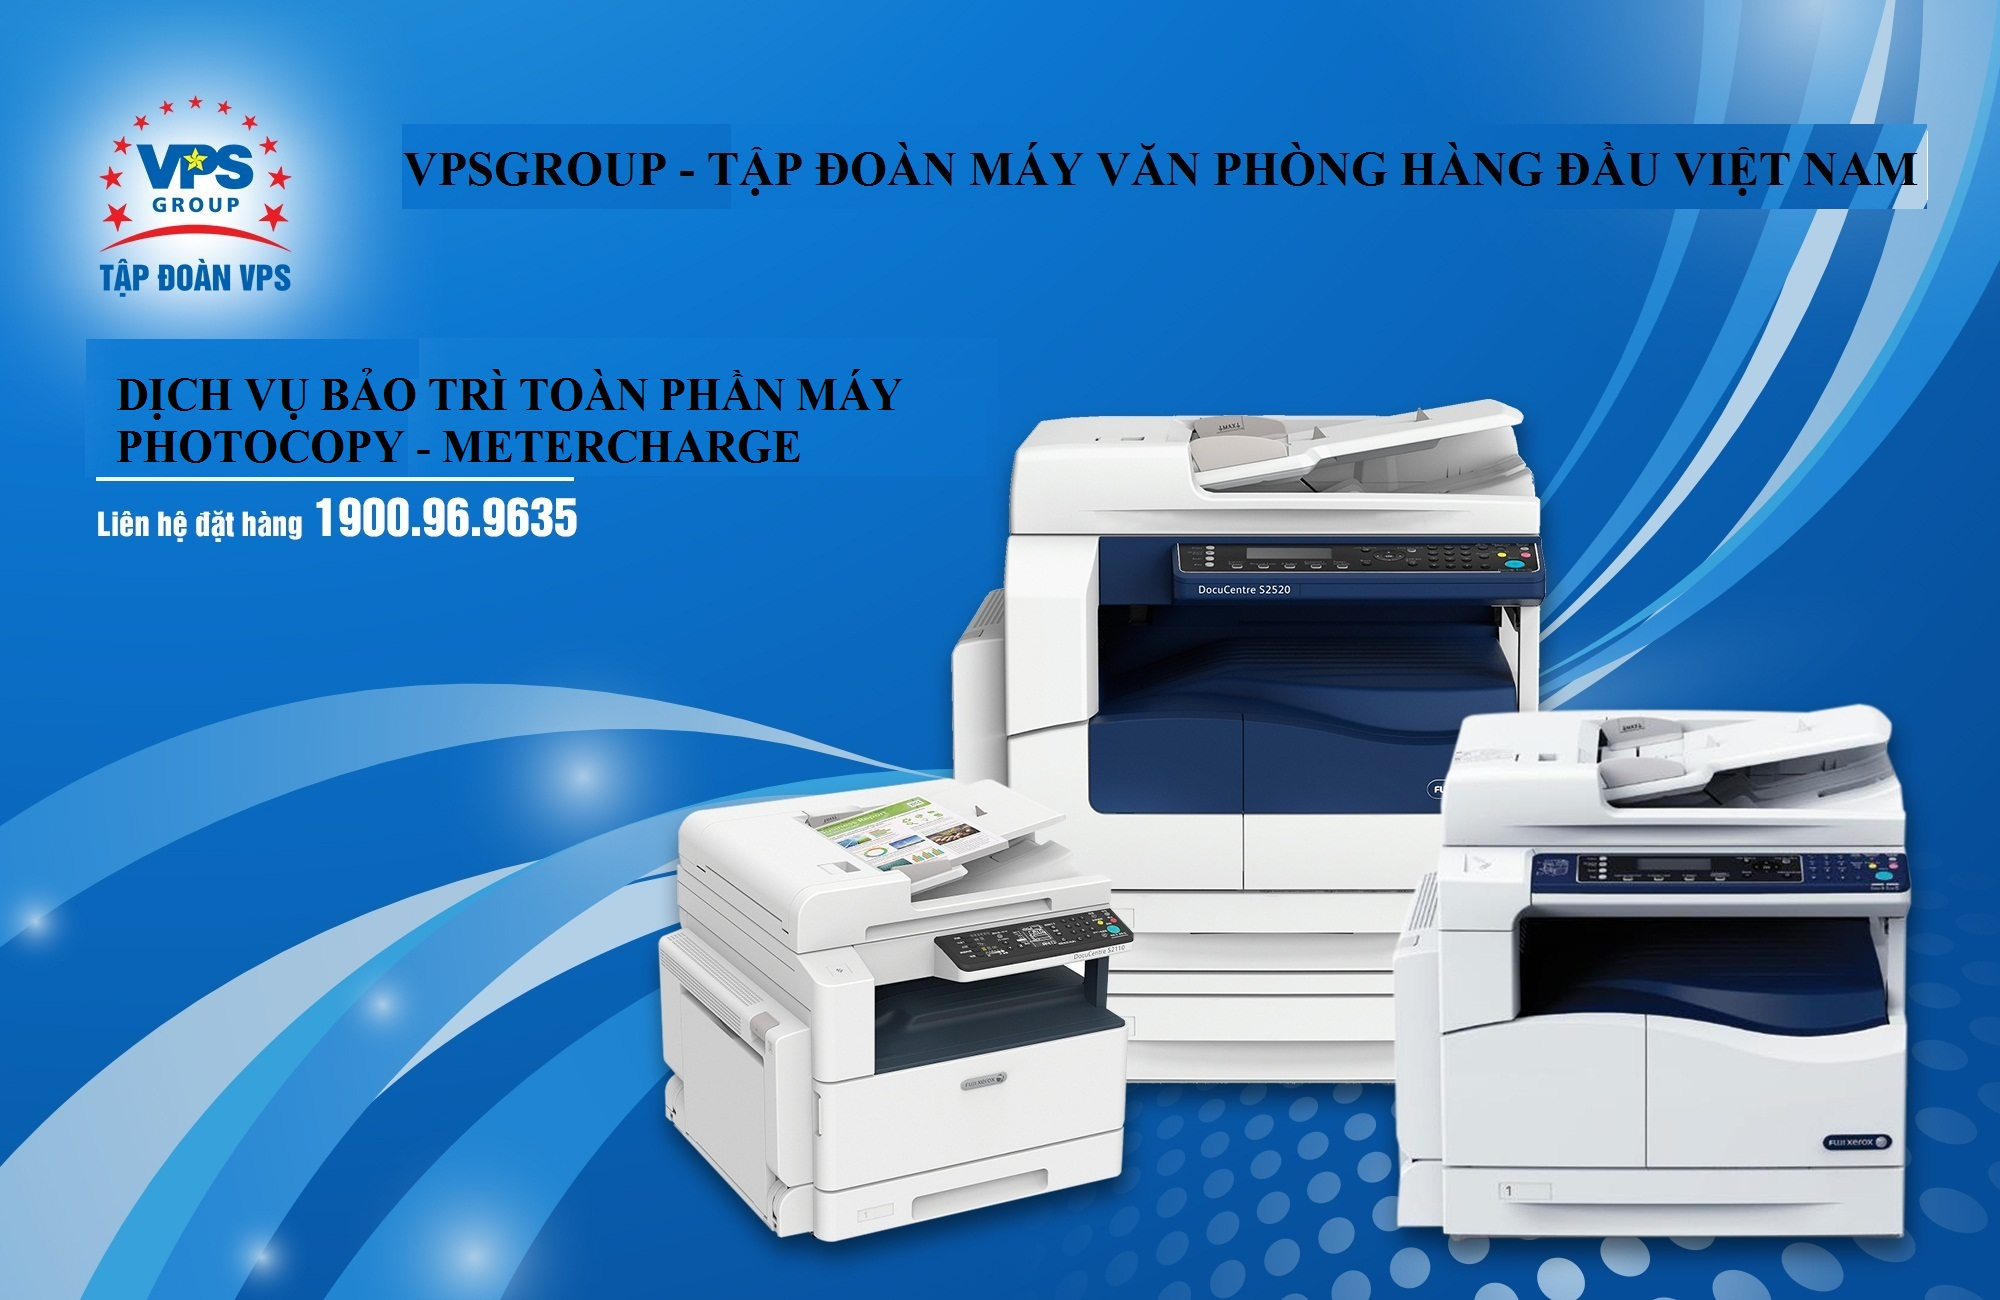 dich-vu-bao-tri-toan-phan-may-photocopy-metercharge